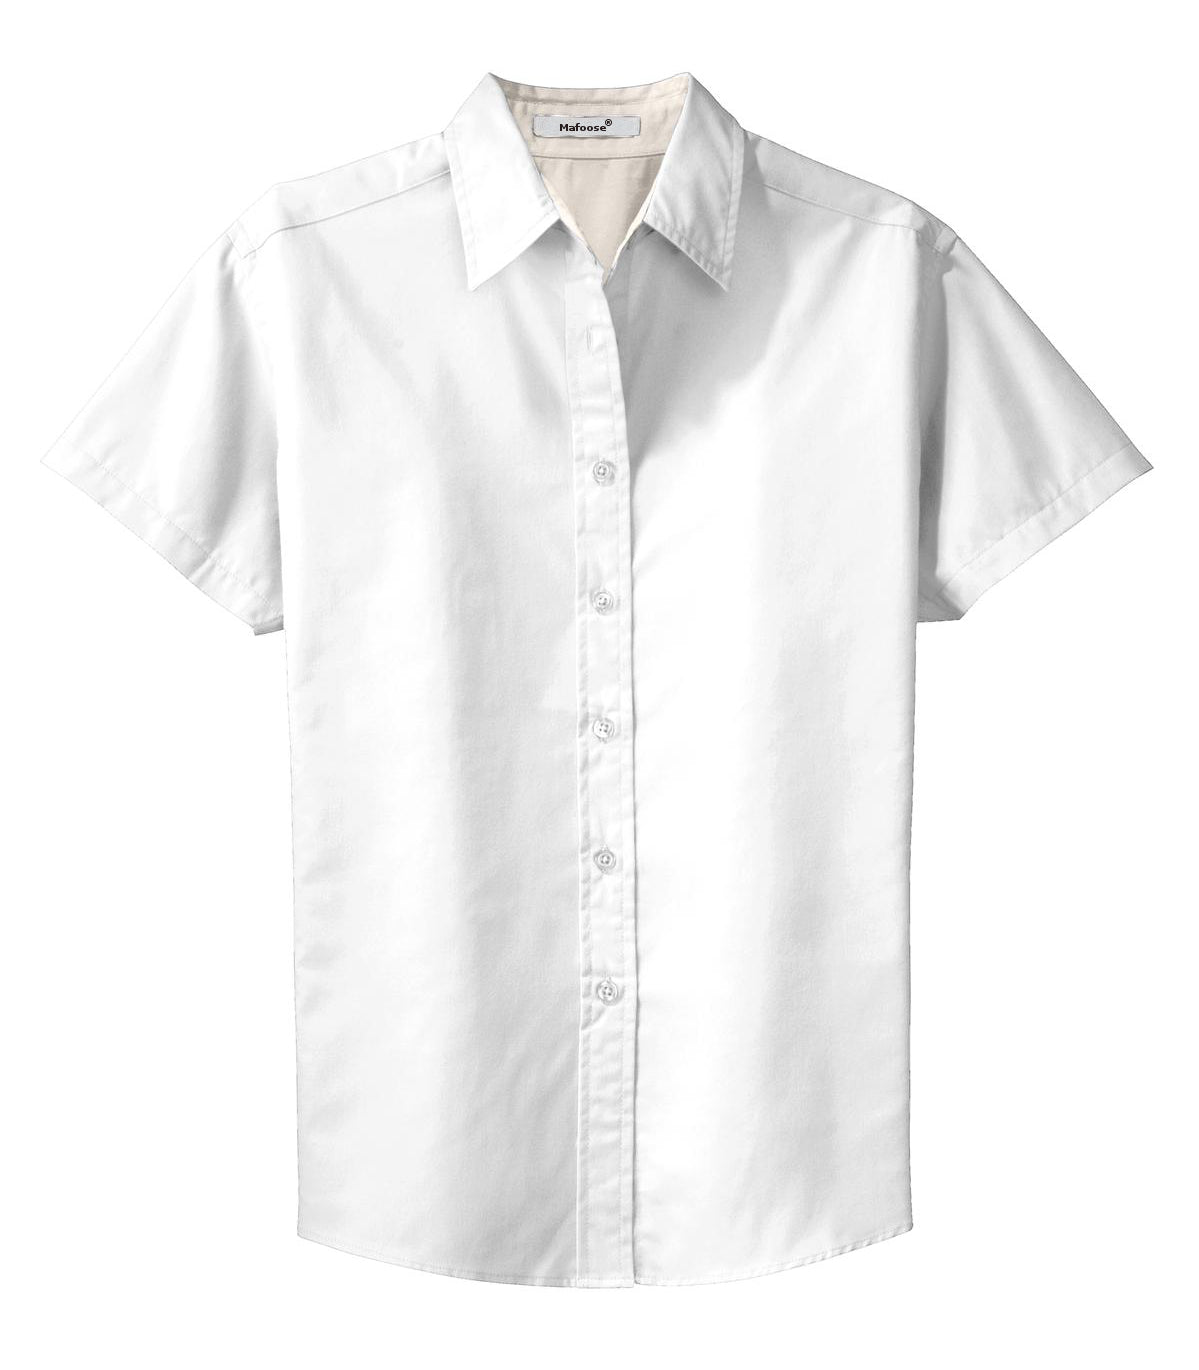 Mafoose Women's Comfortable Short Sleeve Easy Care Shirt White/Light Stone-Front